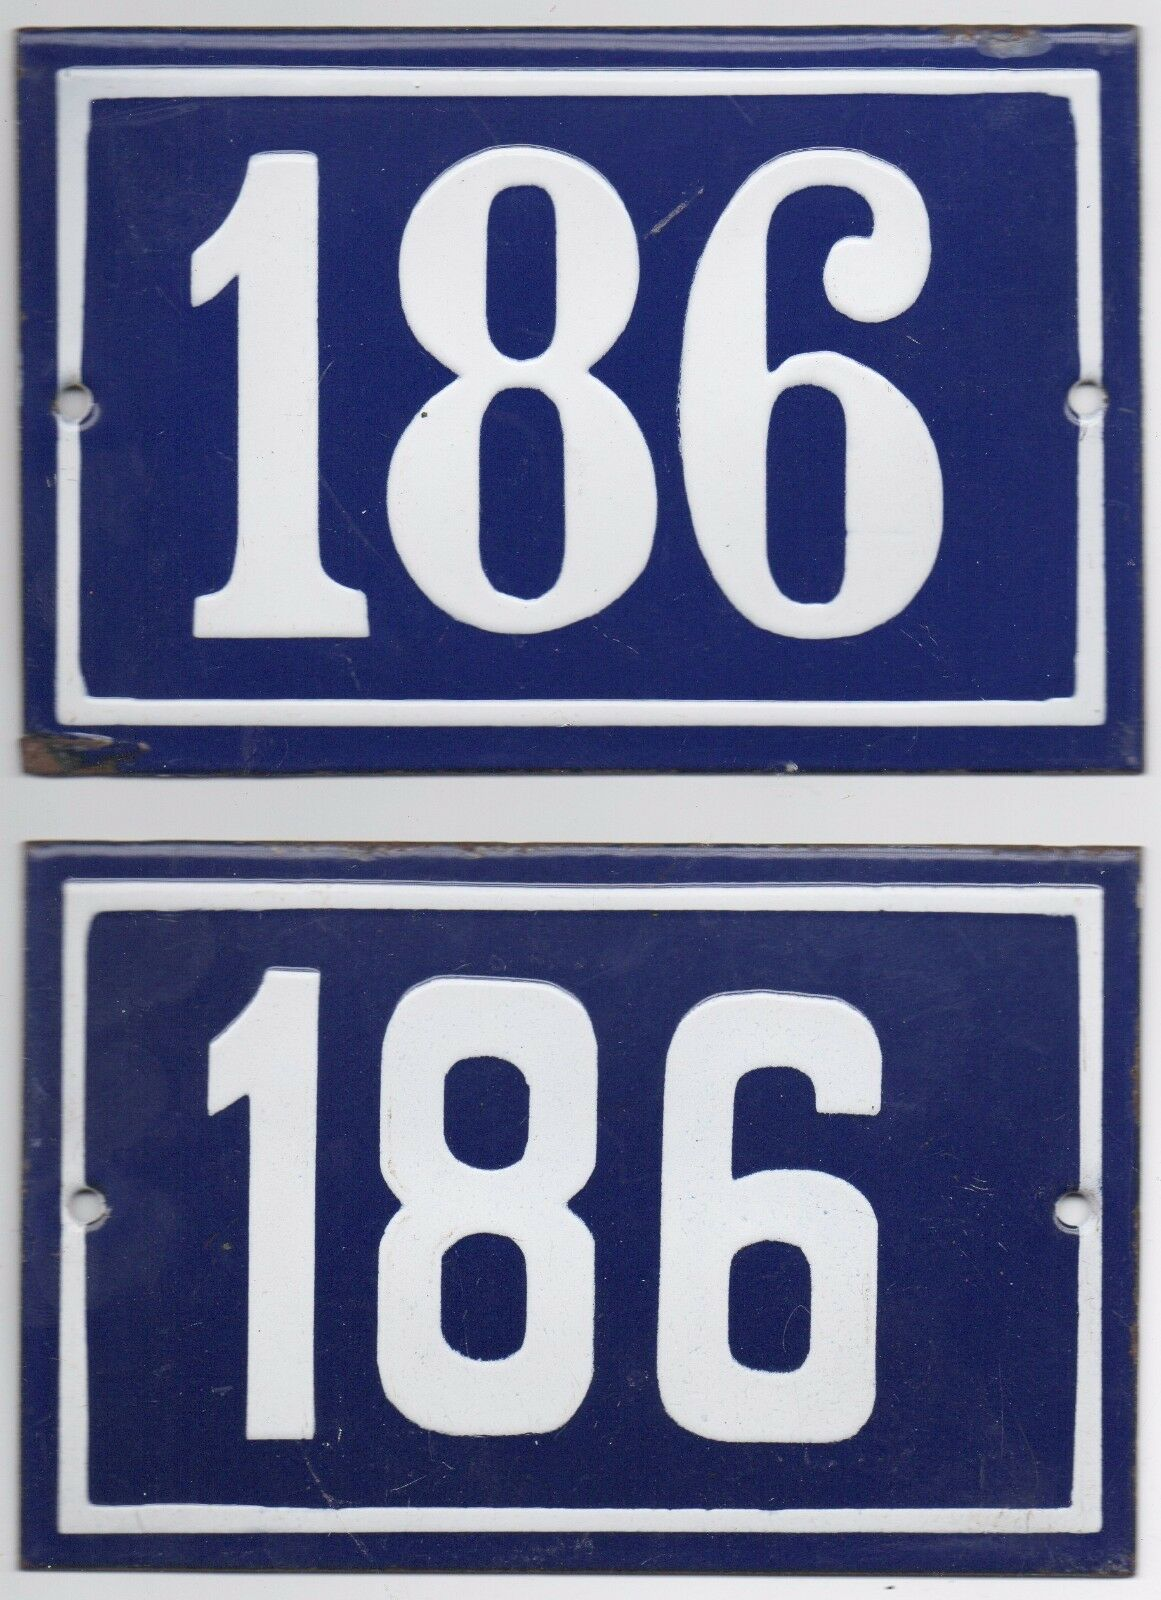 Old Blau French house number 186 door gate wall fence street sign plate plaque